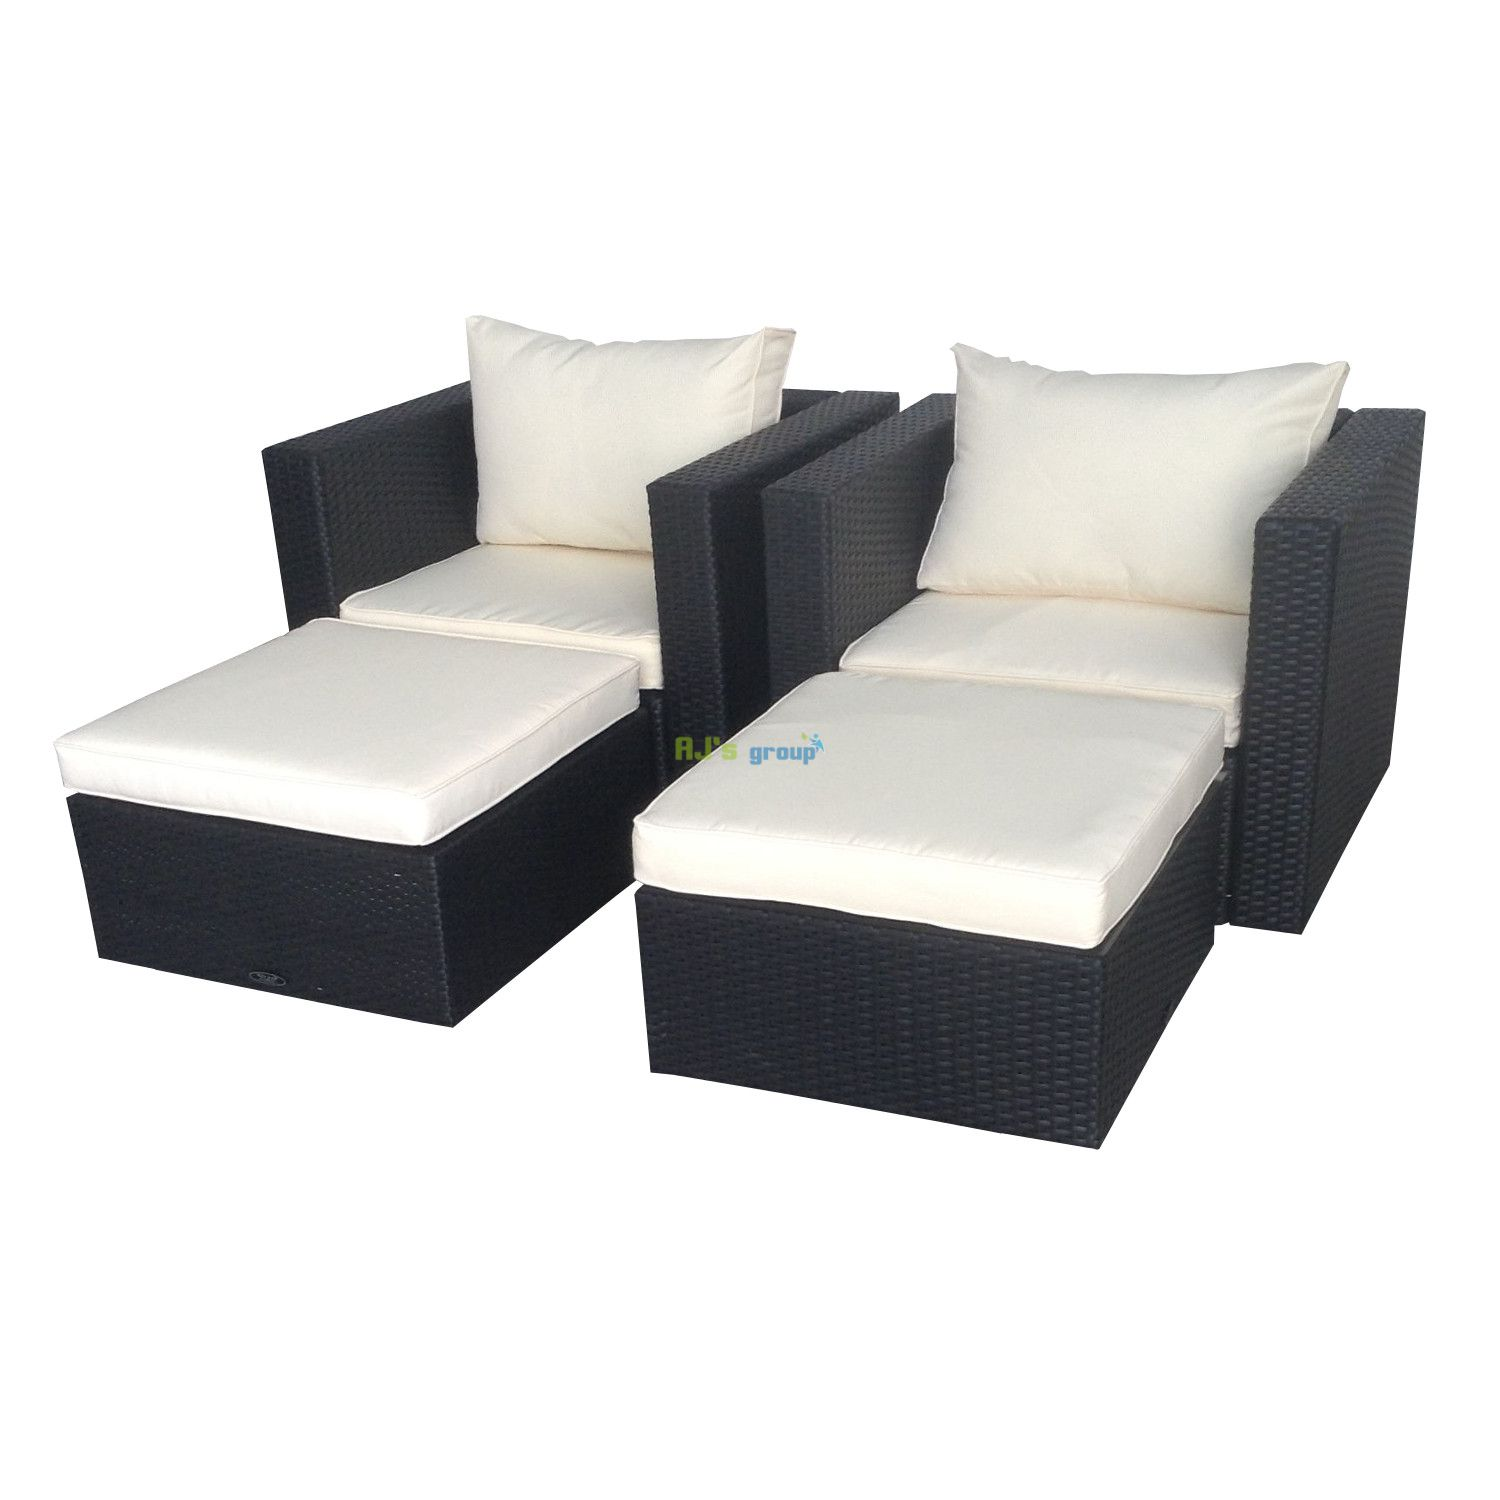 gartenmobel plastik beste bildideen zu hause design. Black Bedroom Furniture Sets. Home Design Ideas